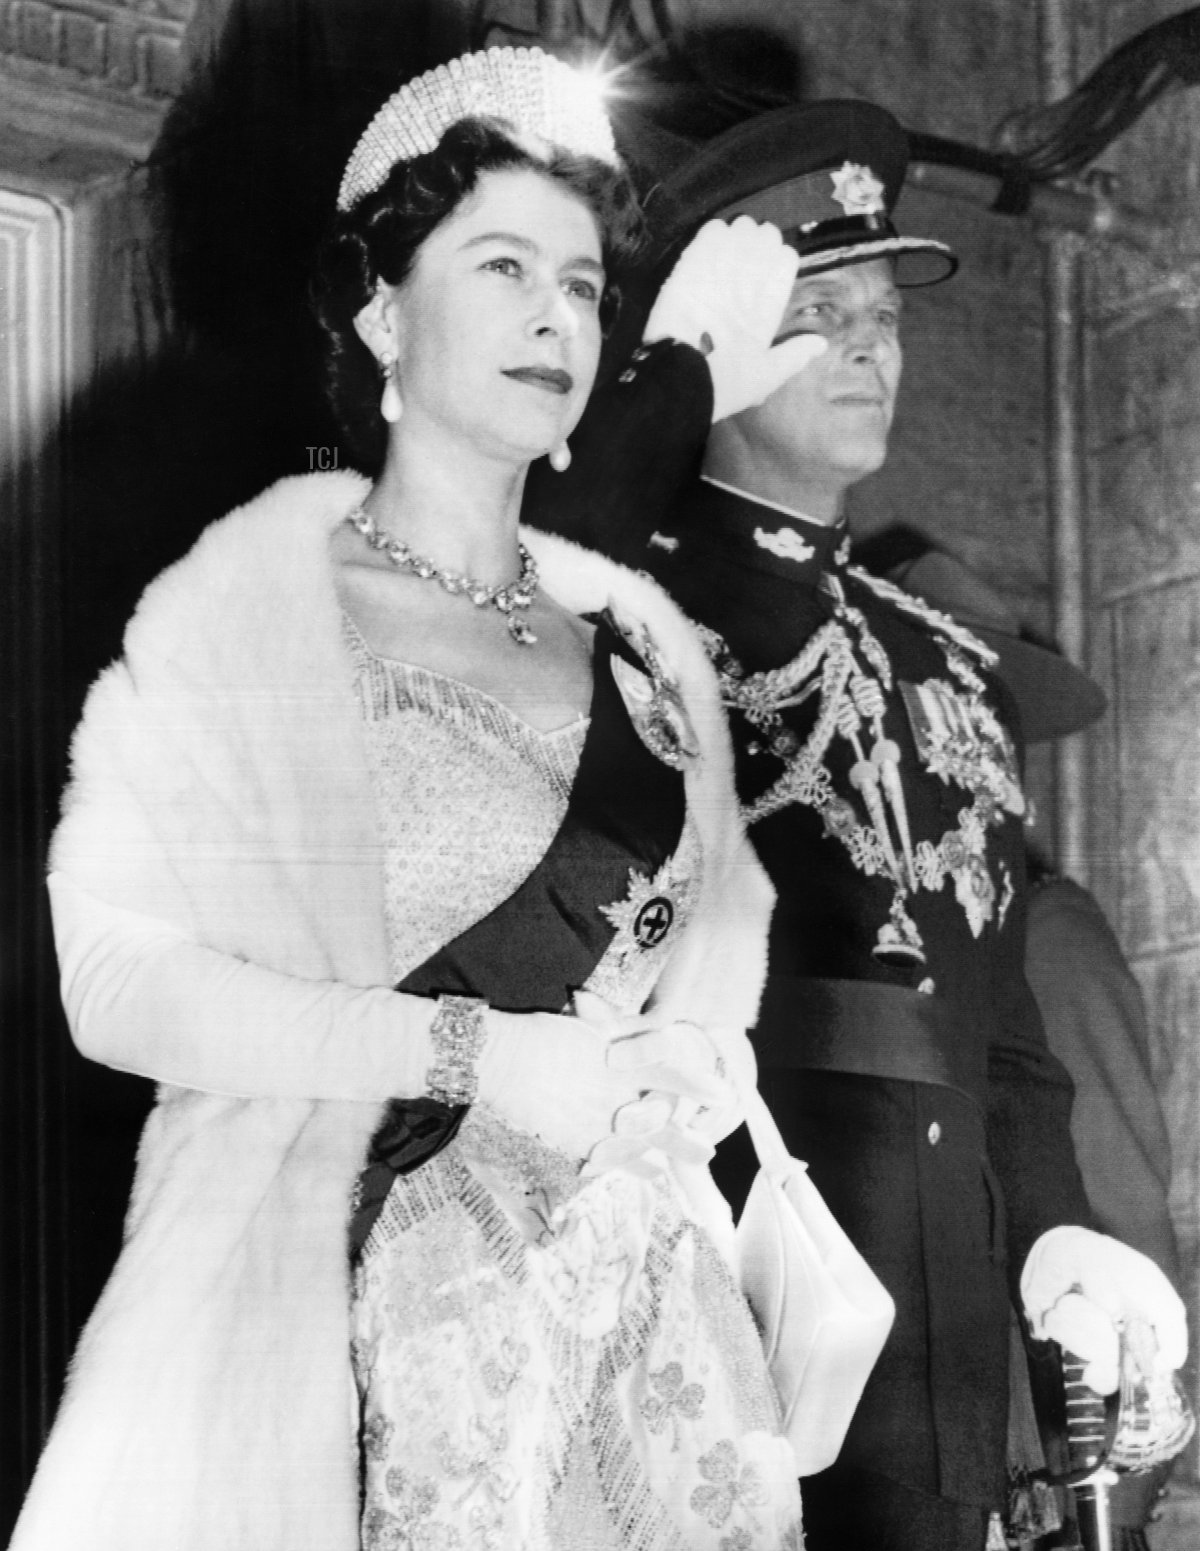 Britain's Queen Elizabeth II and Prince Philip, Duke of Edinburgh (R) attend the ceremonies marking the opening of Parliament in Ottawa on October 14, 1957